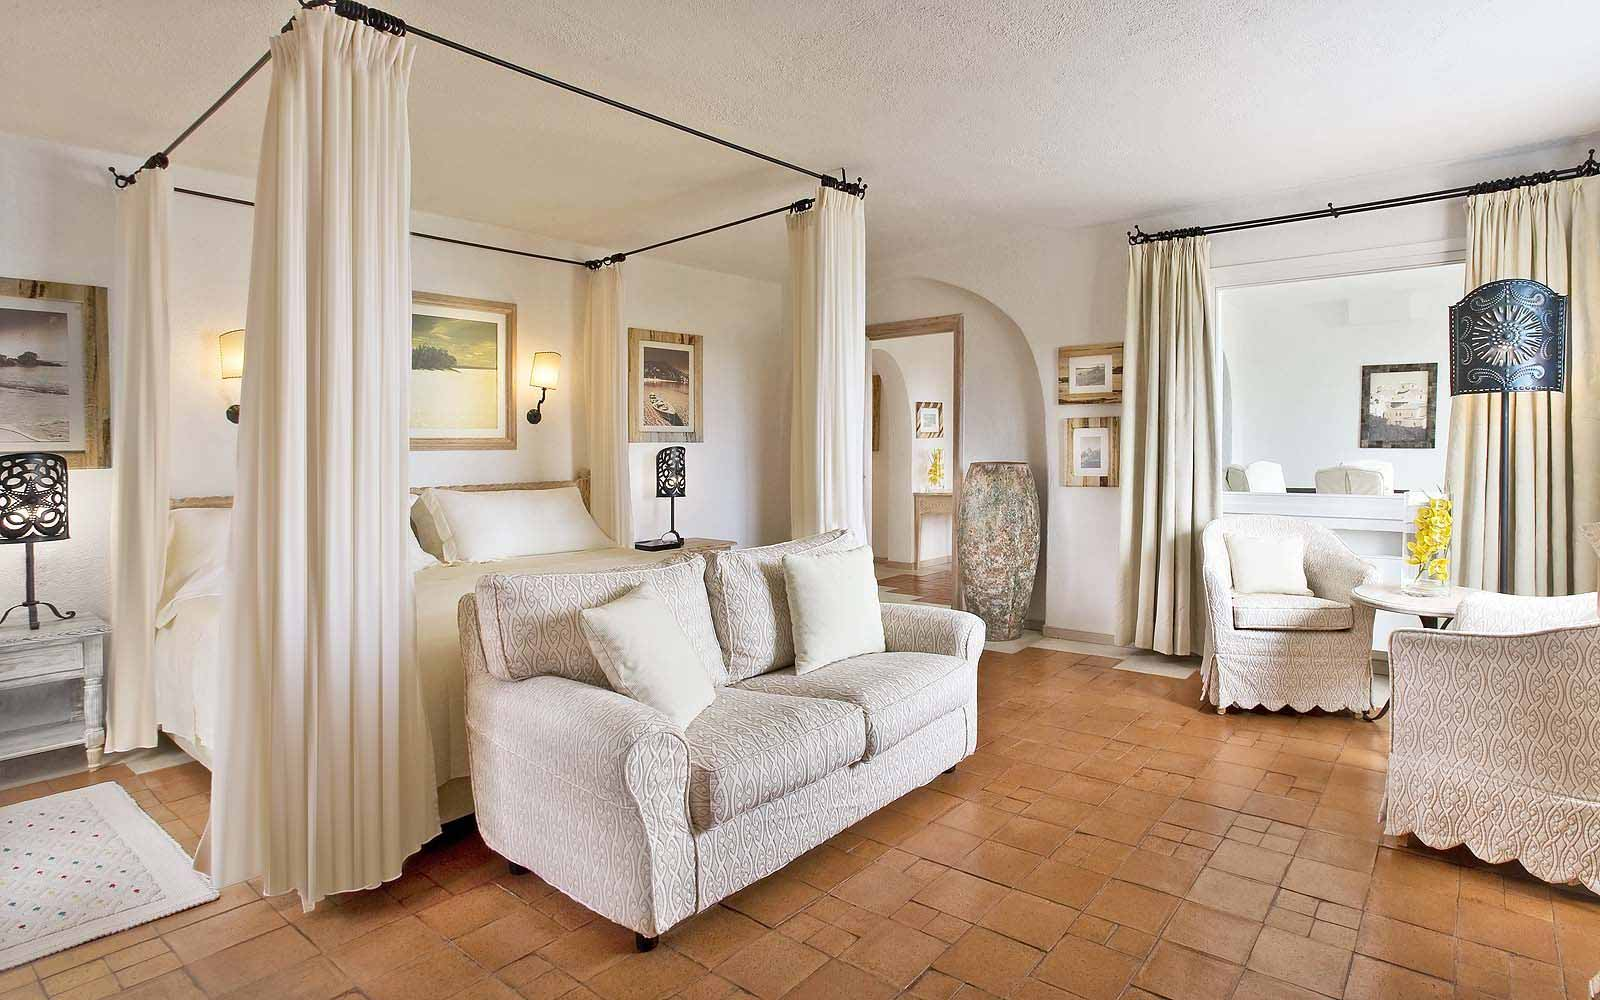 A Royal Suite's bedroom at the Hotel Romazzino